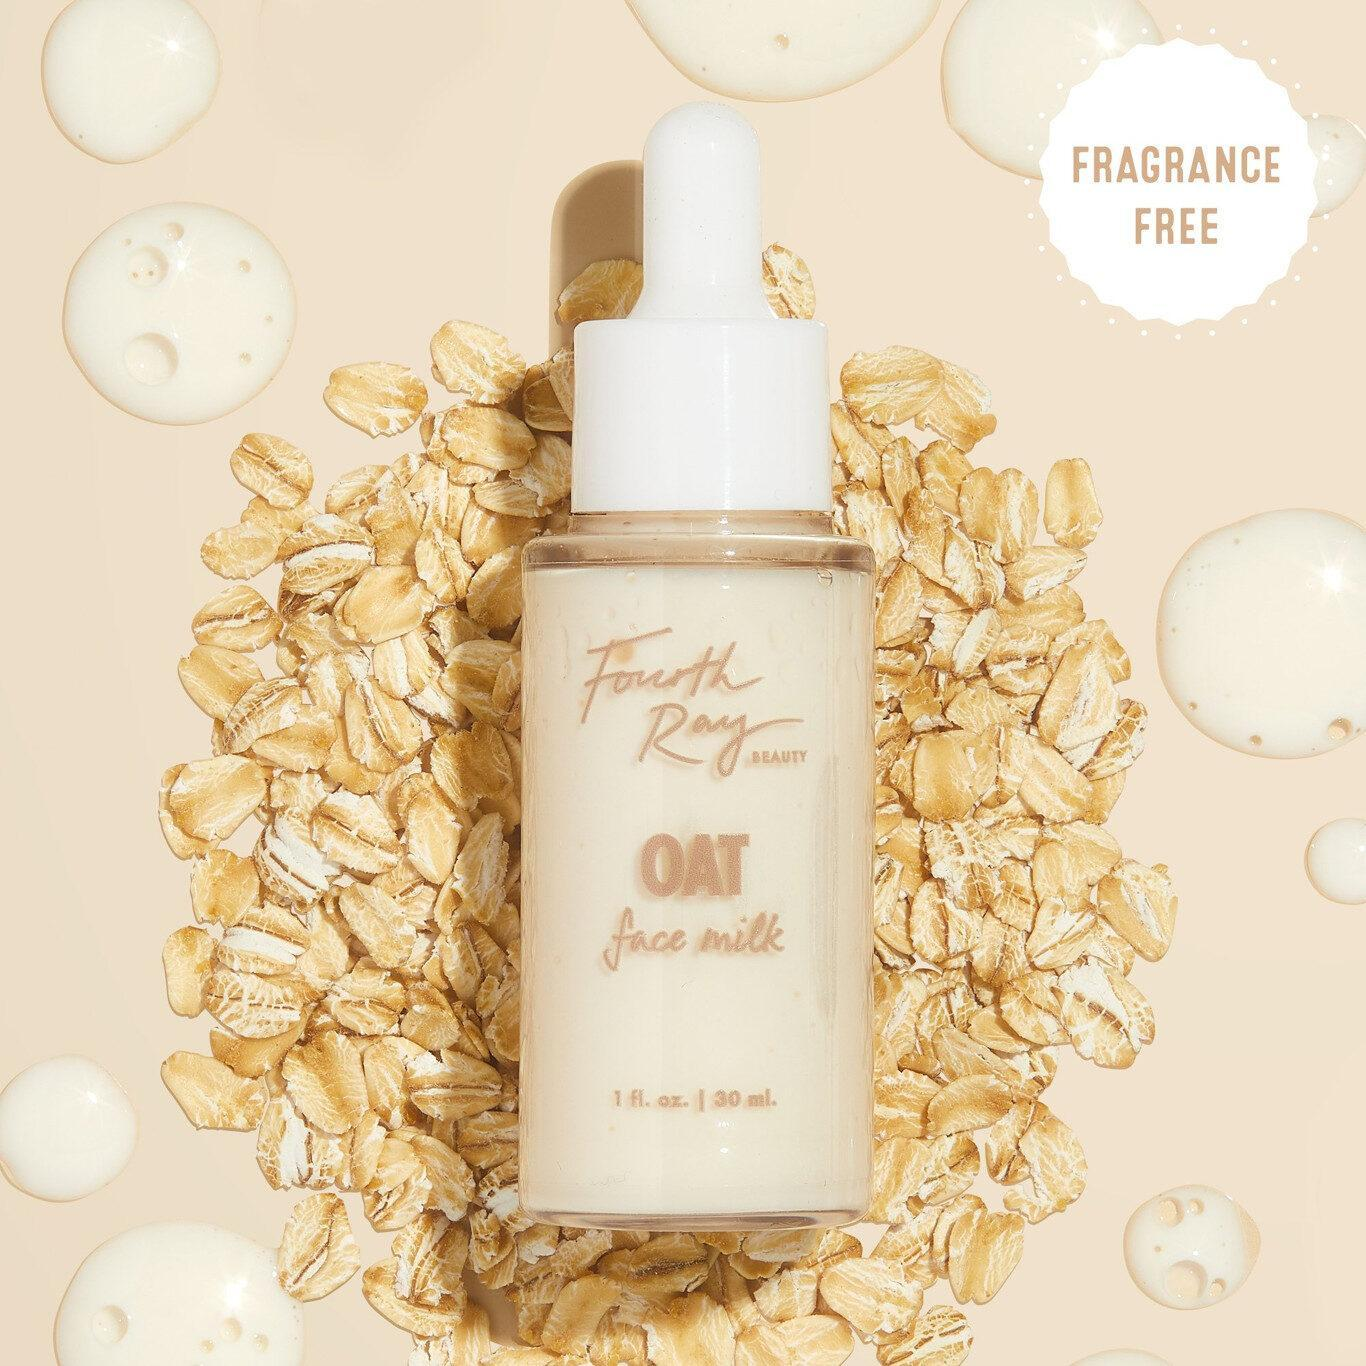 ColoutPop Cosmetics Melrose Collection Fourth Ray Beauty Oat Face Milk Promo